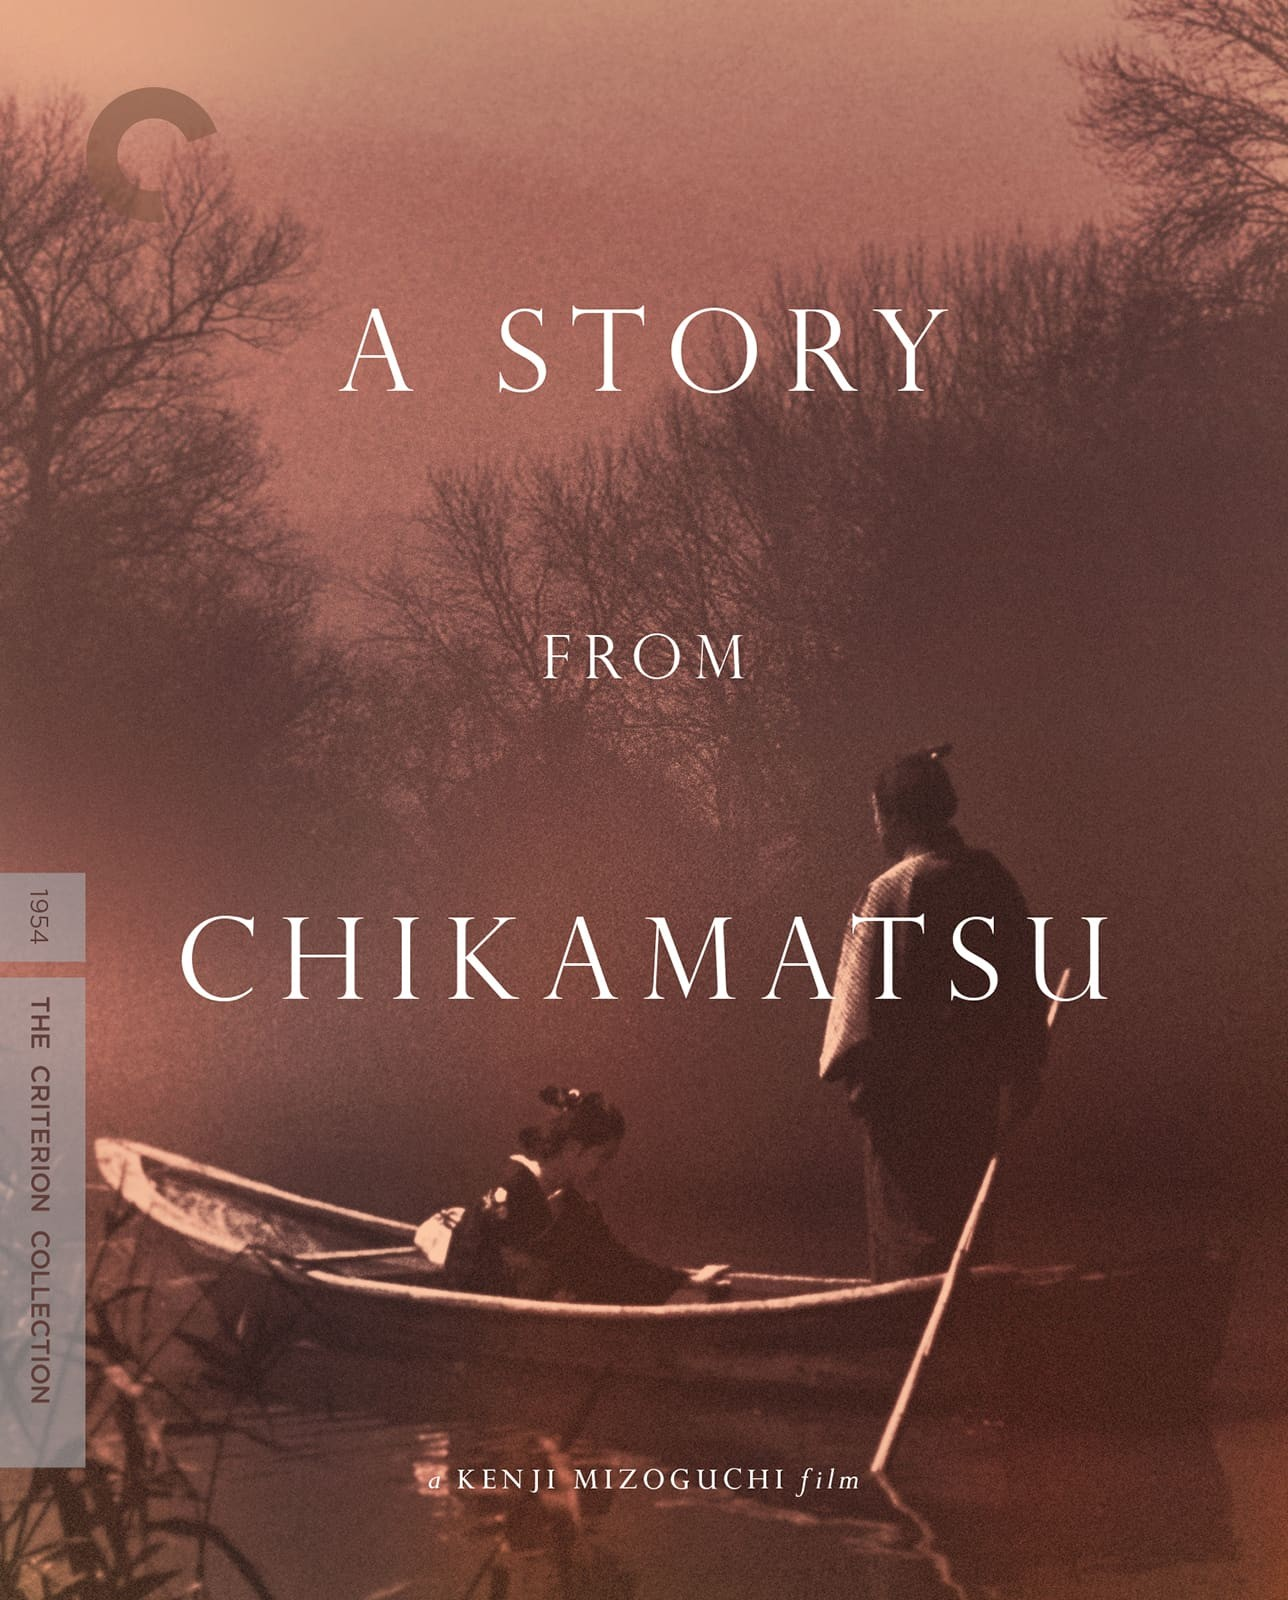 The next film in the Cinema East series is A Story From Chikamatsu, which screens at 5:45 p.m. on Tuesday, January 14, 2020, at the Pickford Film Center (1318 Bay Street).